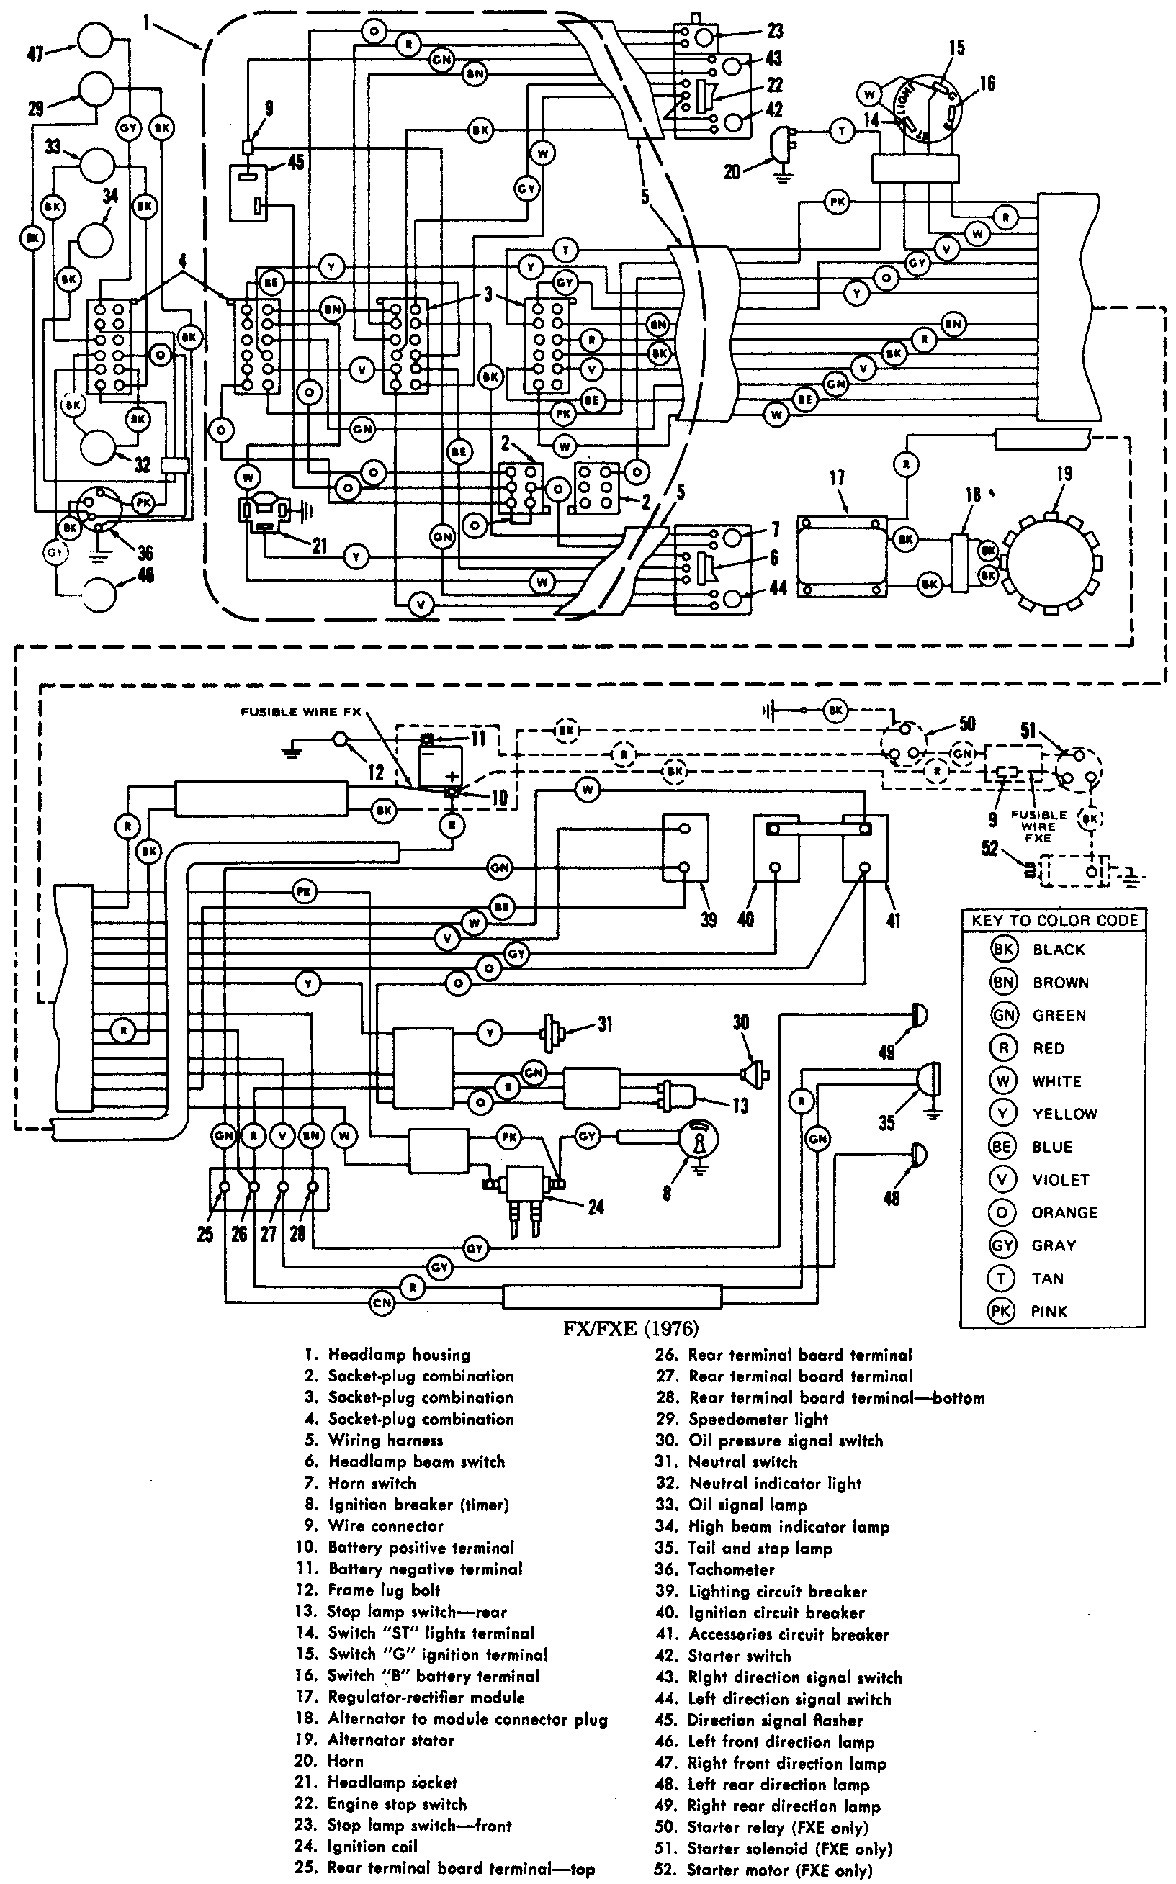 Harley Turn Signal Flasher Schematic Reinvent Your Wiring Diagram Universal Switch Badlands Detailed Diagrams Rh 4rmotorsports Com 2858